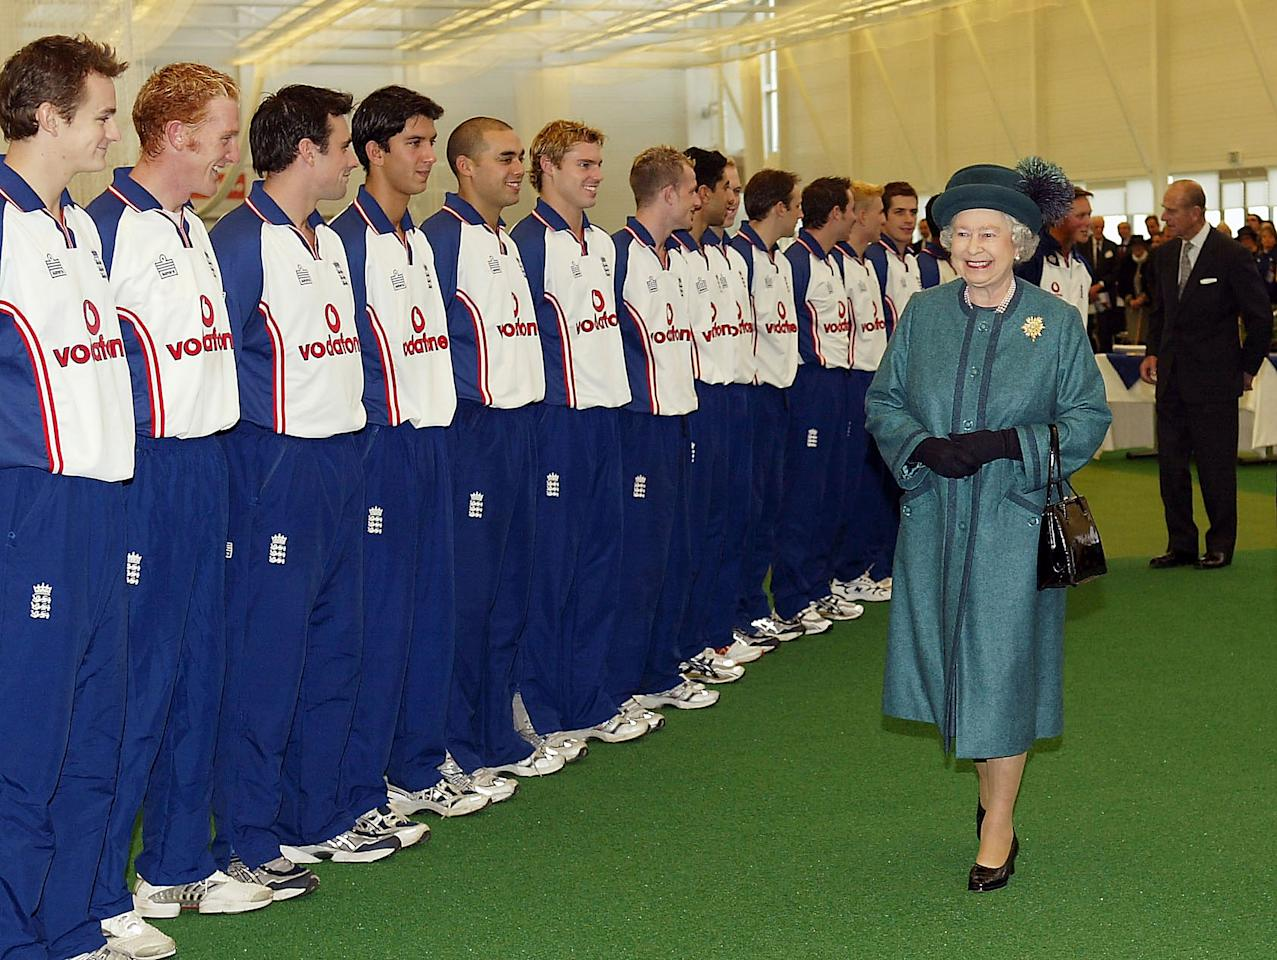 LOUGHBOROUGH, ENGLAND - NOVEMBER 14:  HRH Queen Elizabeth II smiles as she makes her way past a row of cricketers during the official opening ceremony of the ECB National Academy at Loughborough University on November 14, 2003 in Loughborough, England.  (Photo by Harry How/Getty Images)